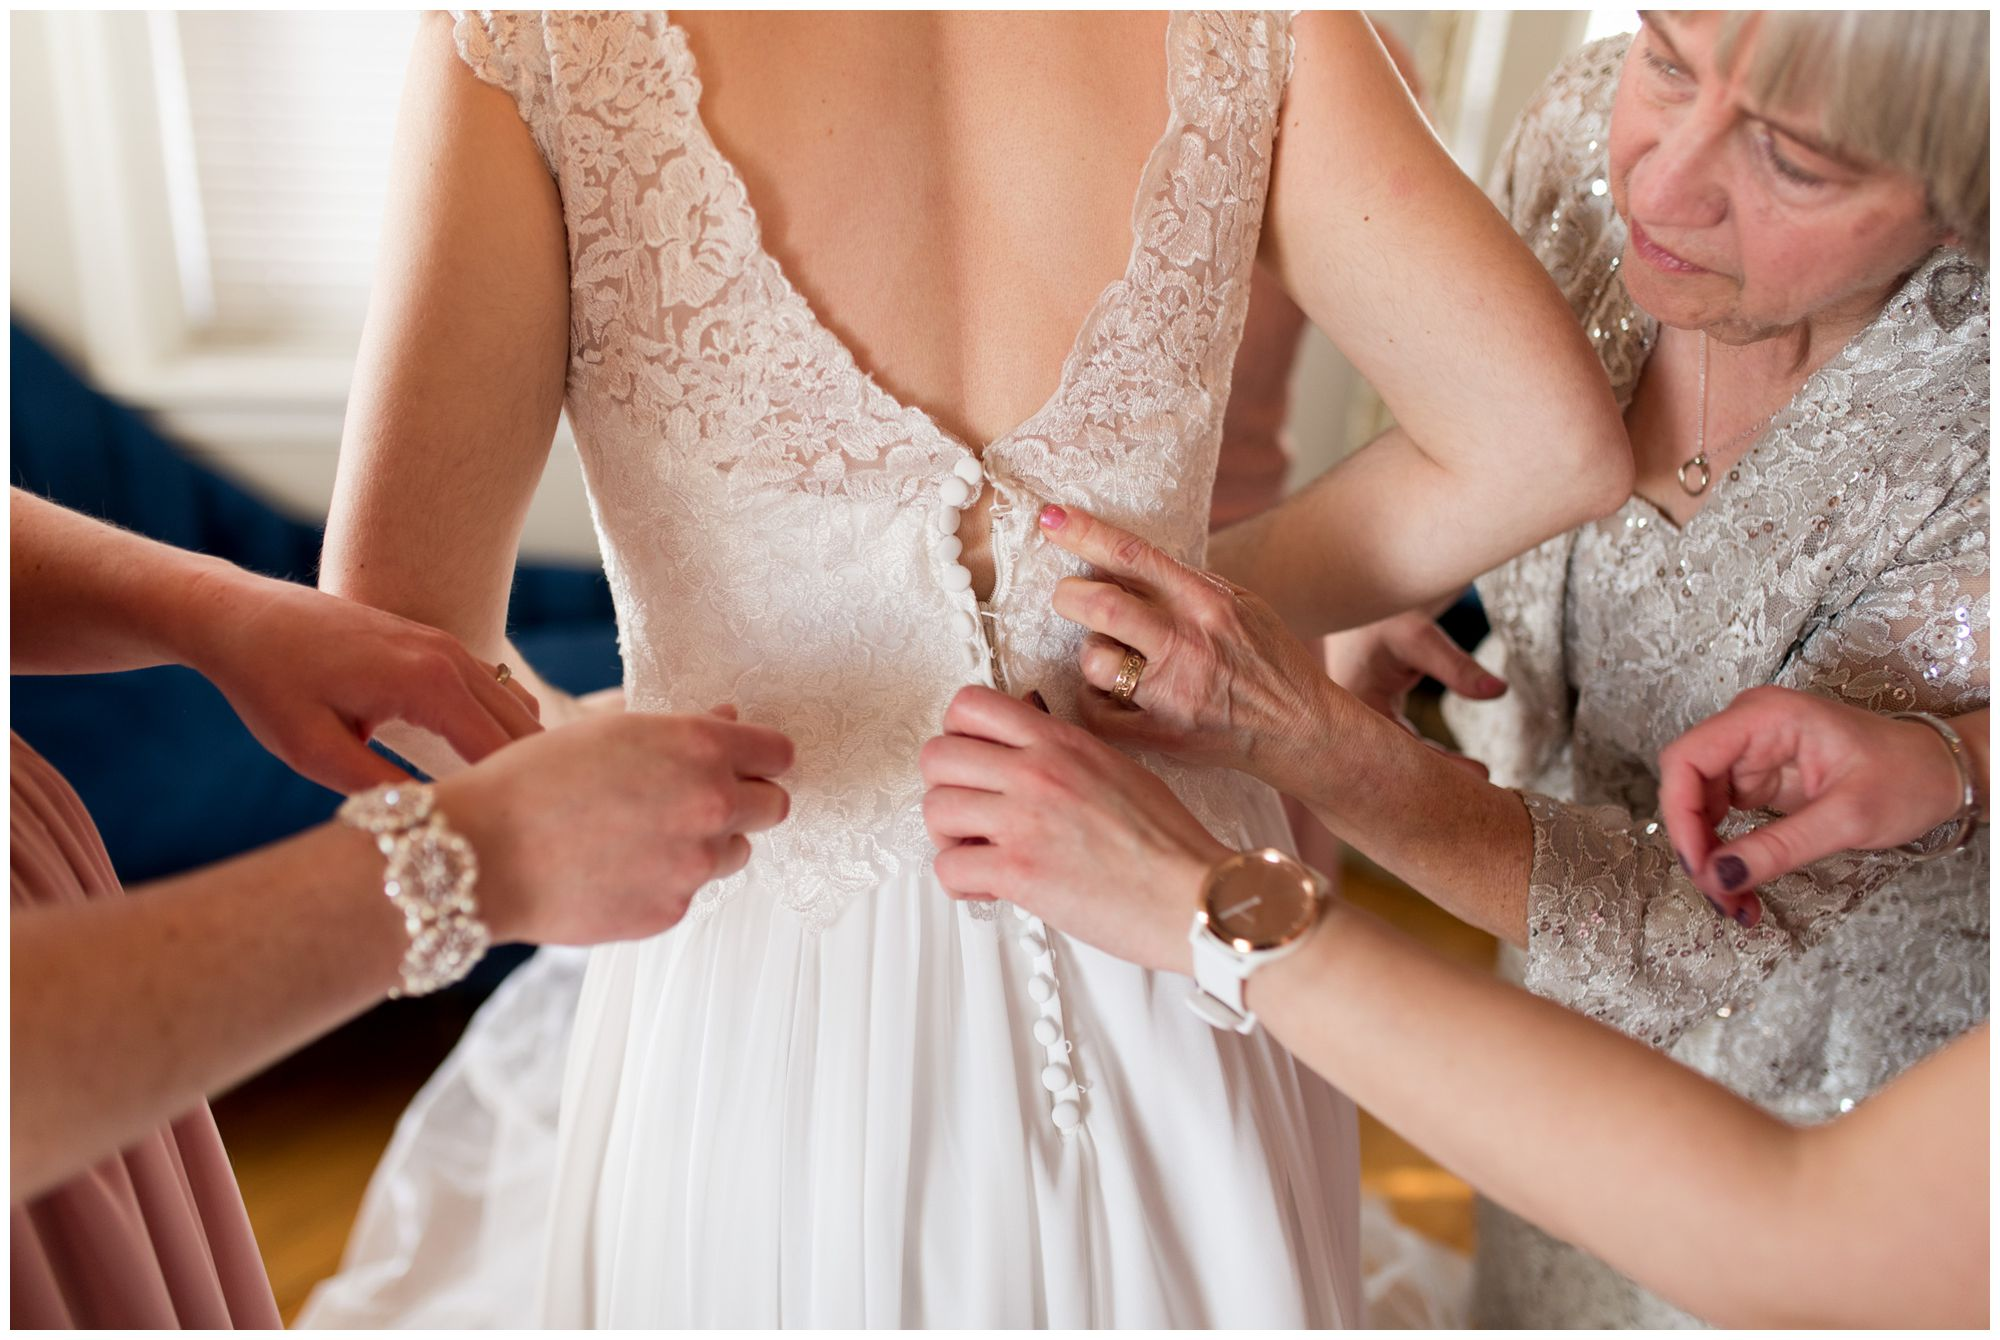 bridesmaids buttoning bride's dress at Bread & Chocolate venue before wedding